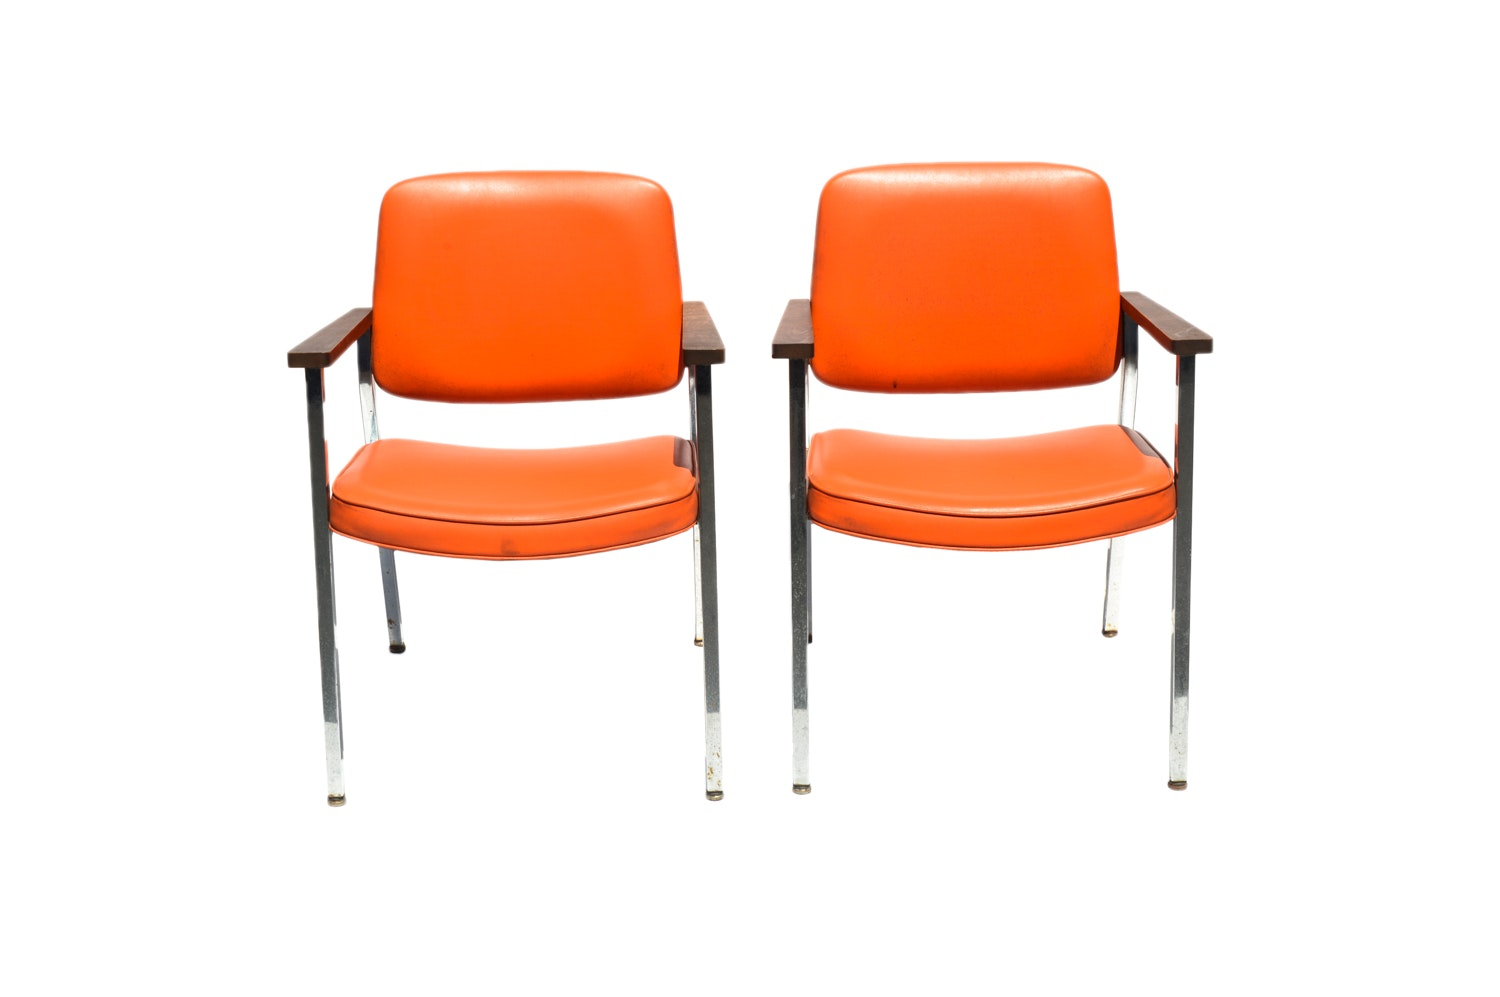 Mid Century Modern Orange Vinyl Office Chairs by United Chair Company